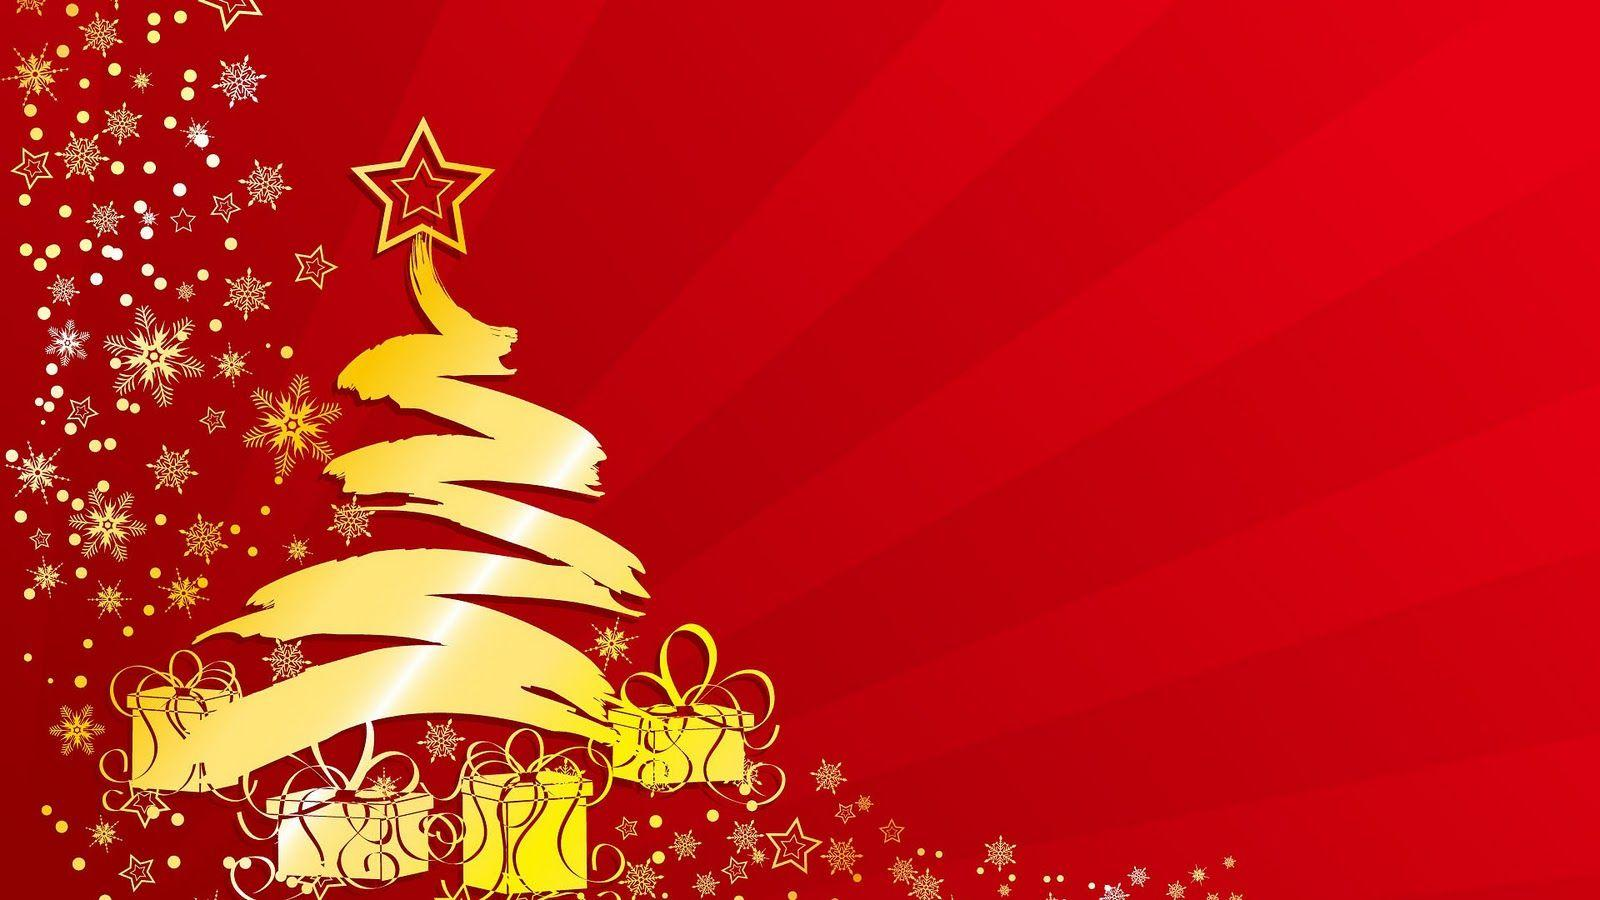 Christmas Background Hd.Images Of Christmas Backgrounds Wallpaper Cave